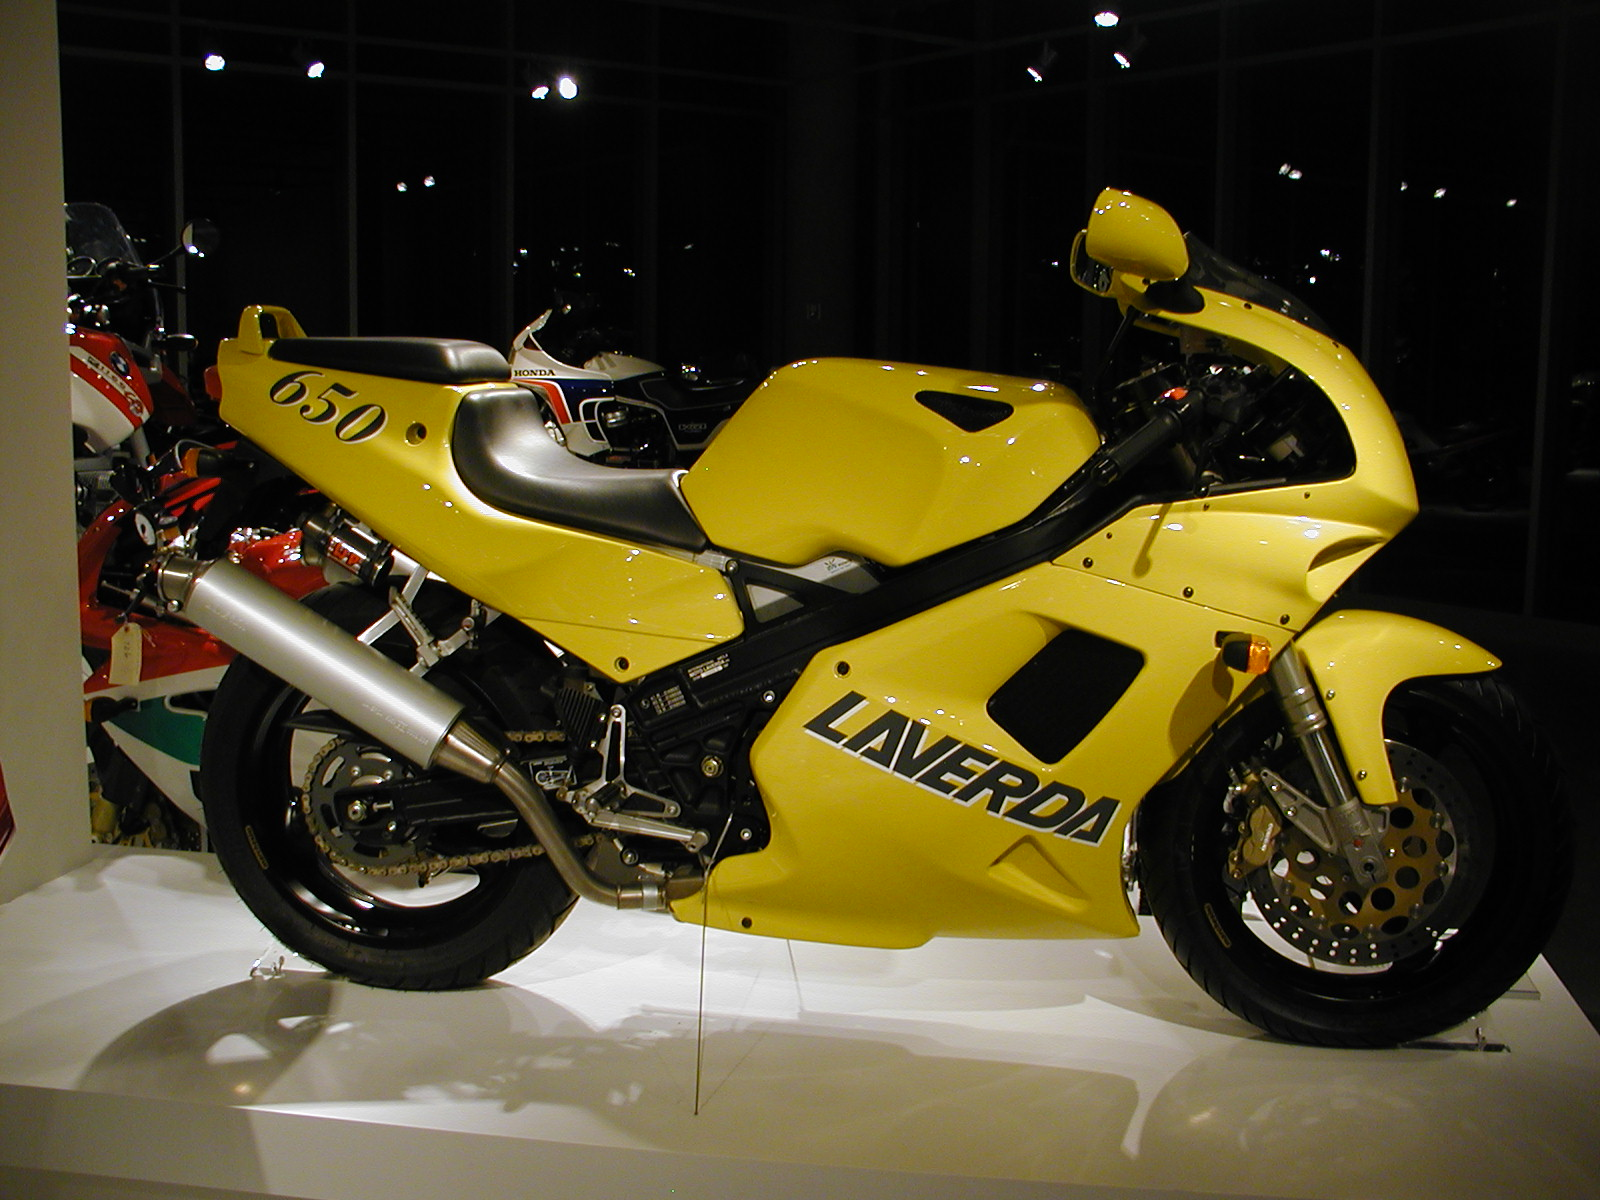 Laverda 650 Ghost Strike images #101807